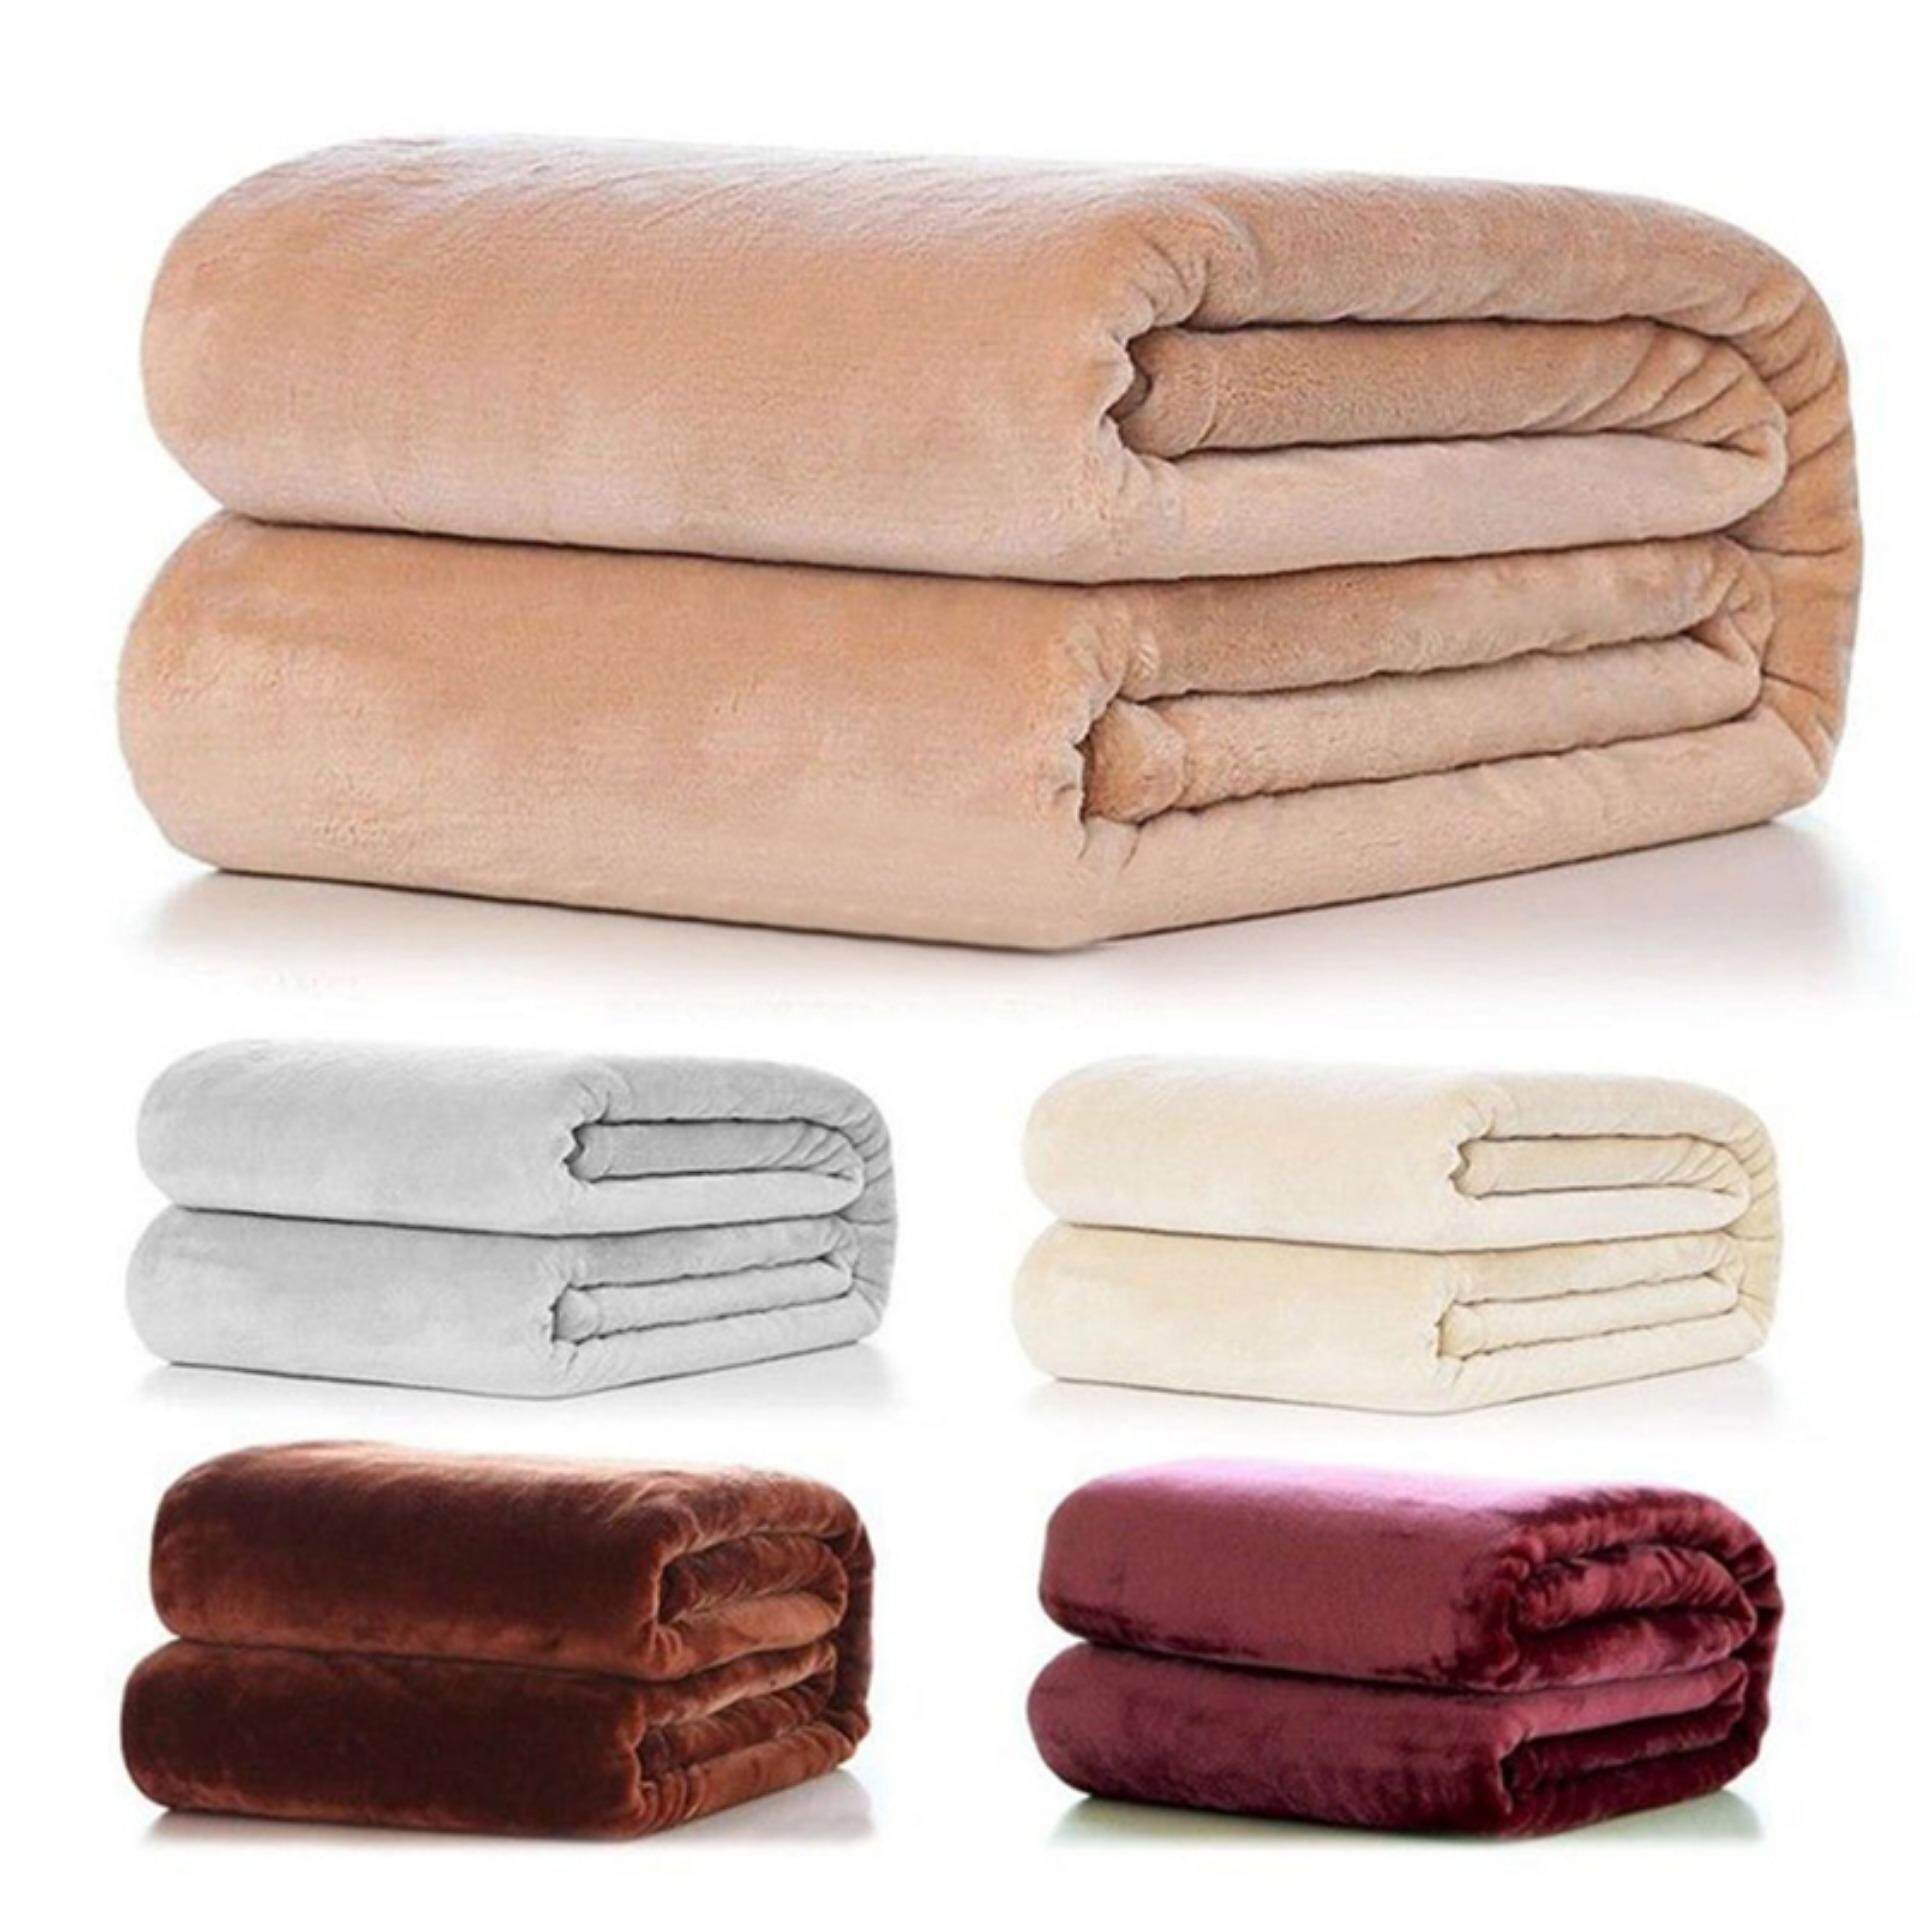 Super Soft Warm Solid Warm Micro Plush Fleece Blanket Throw Rug Sofa Bedding 50*70cm - intl